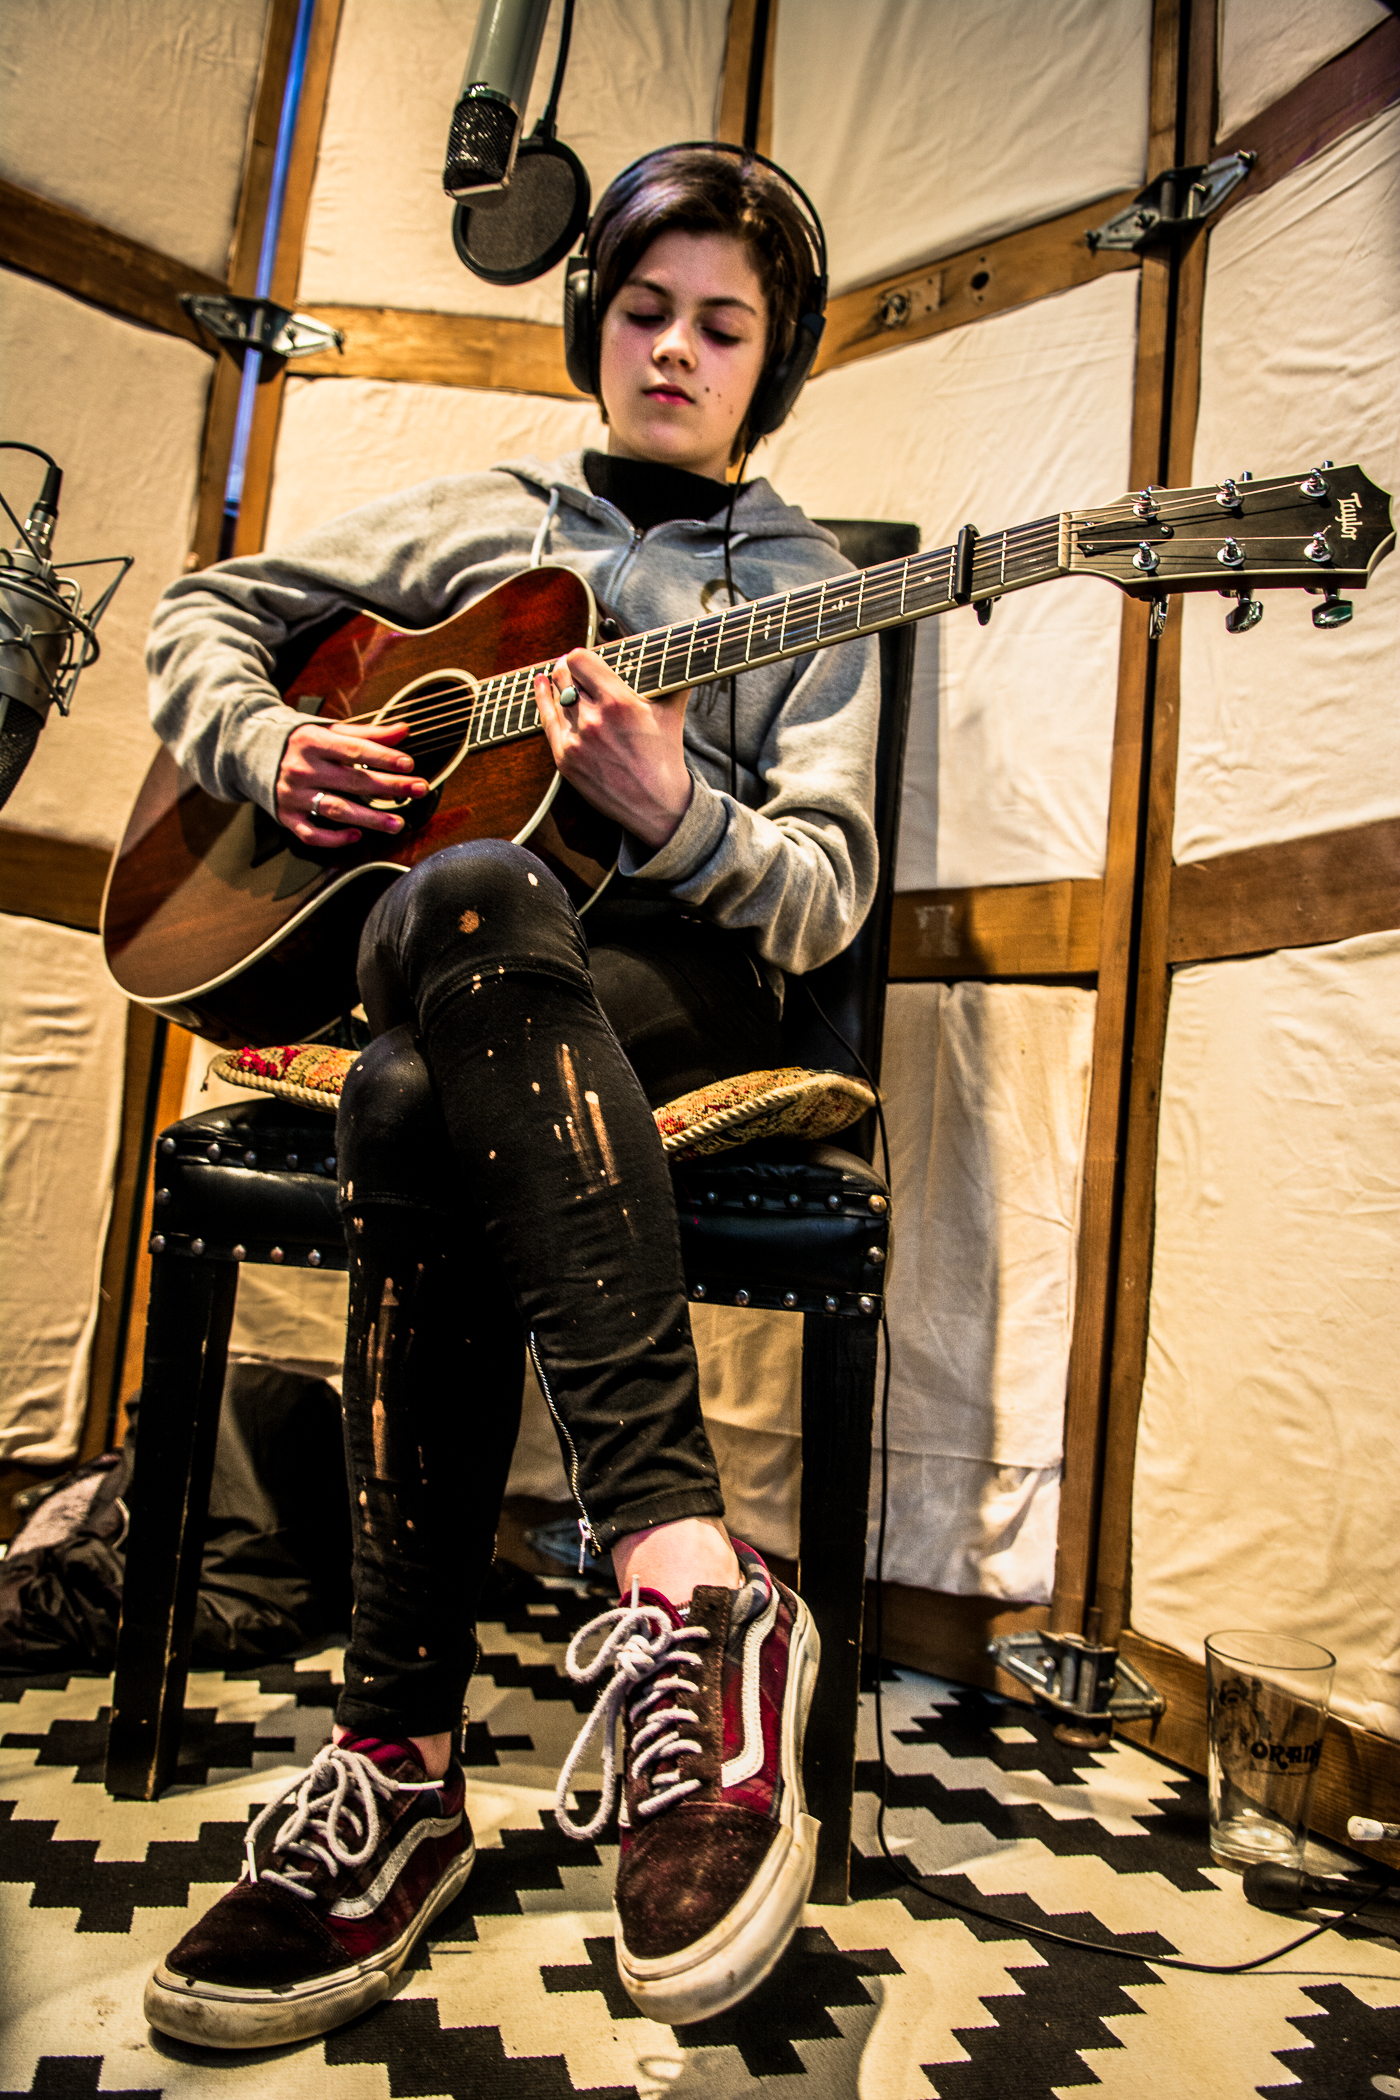 Ava_Guitar_Shoes-9665.jpg